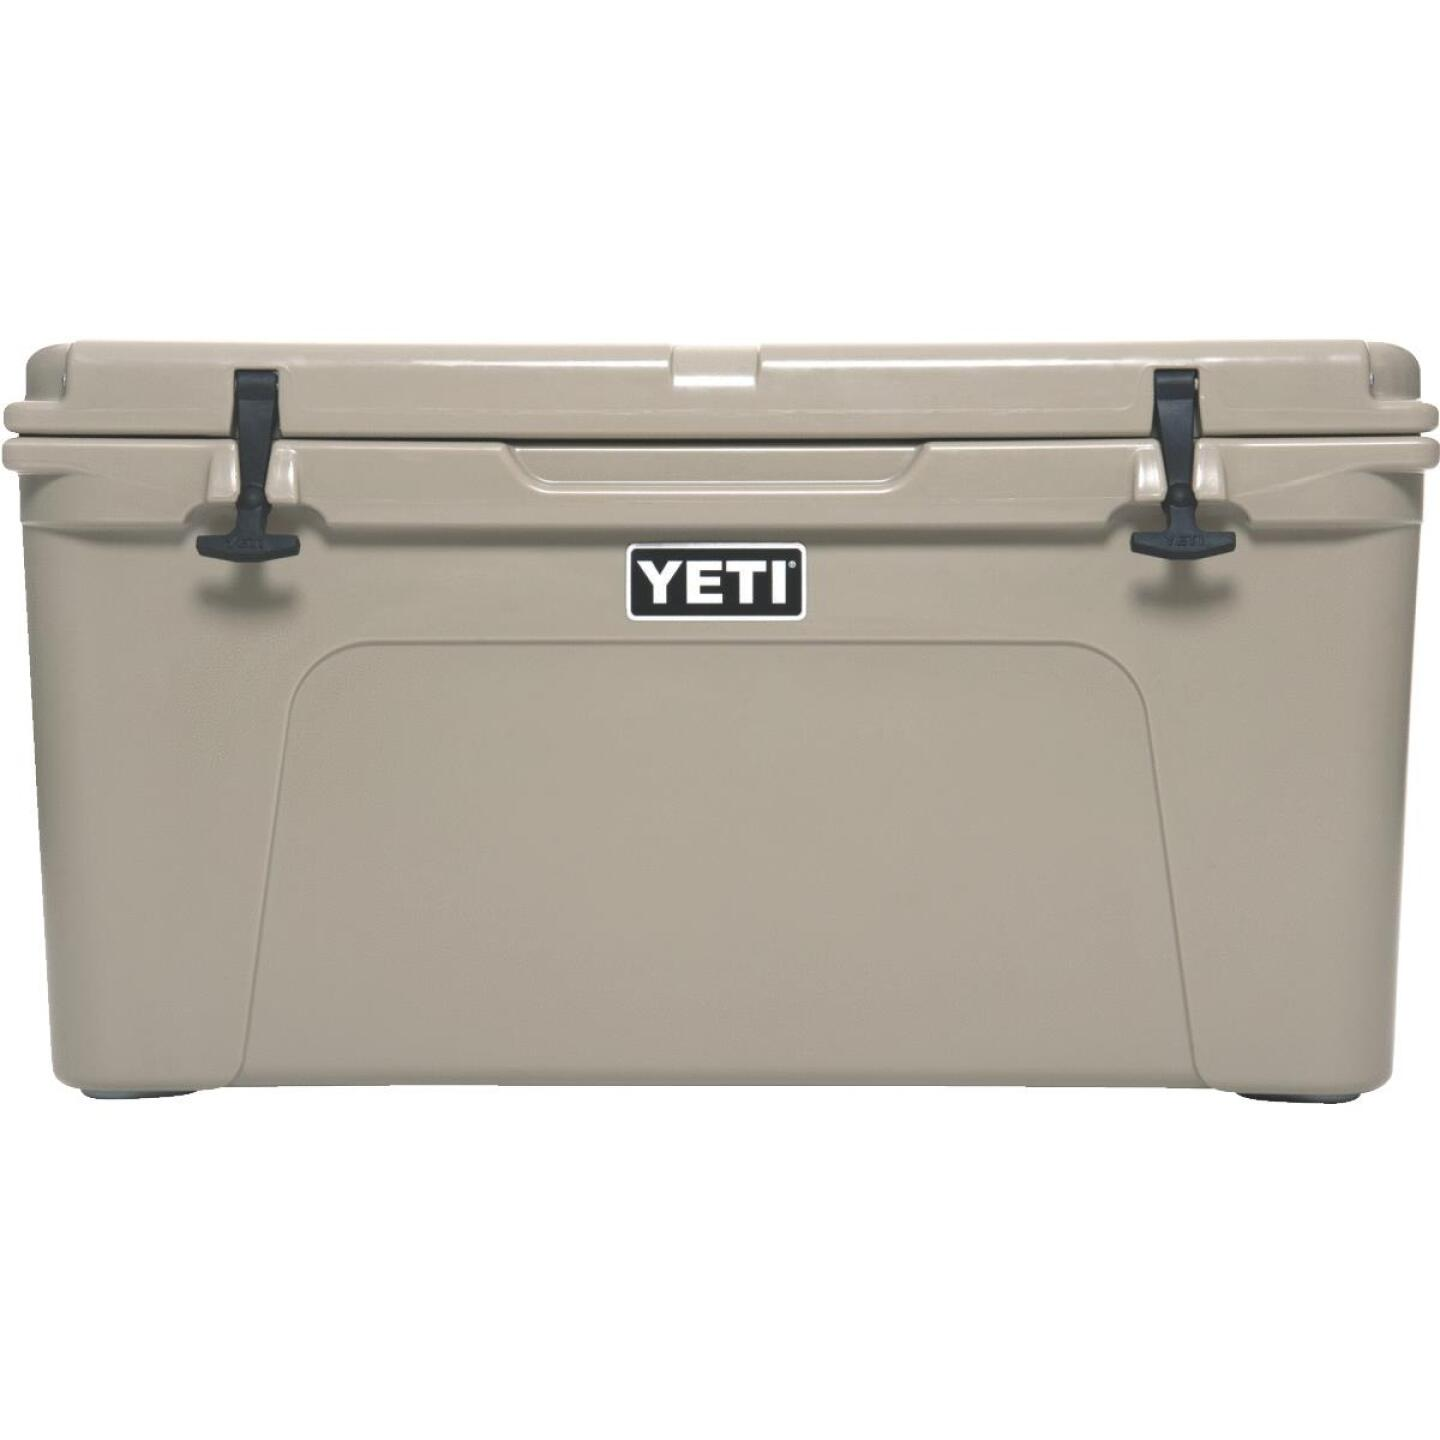 Yeti Tundra 75, 57-Can Cooler, Tan Image 2